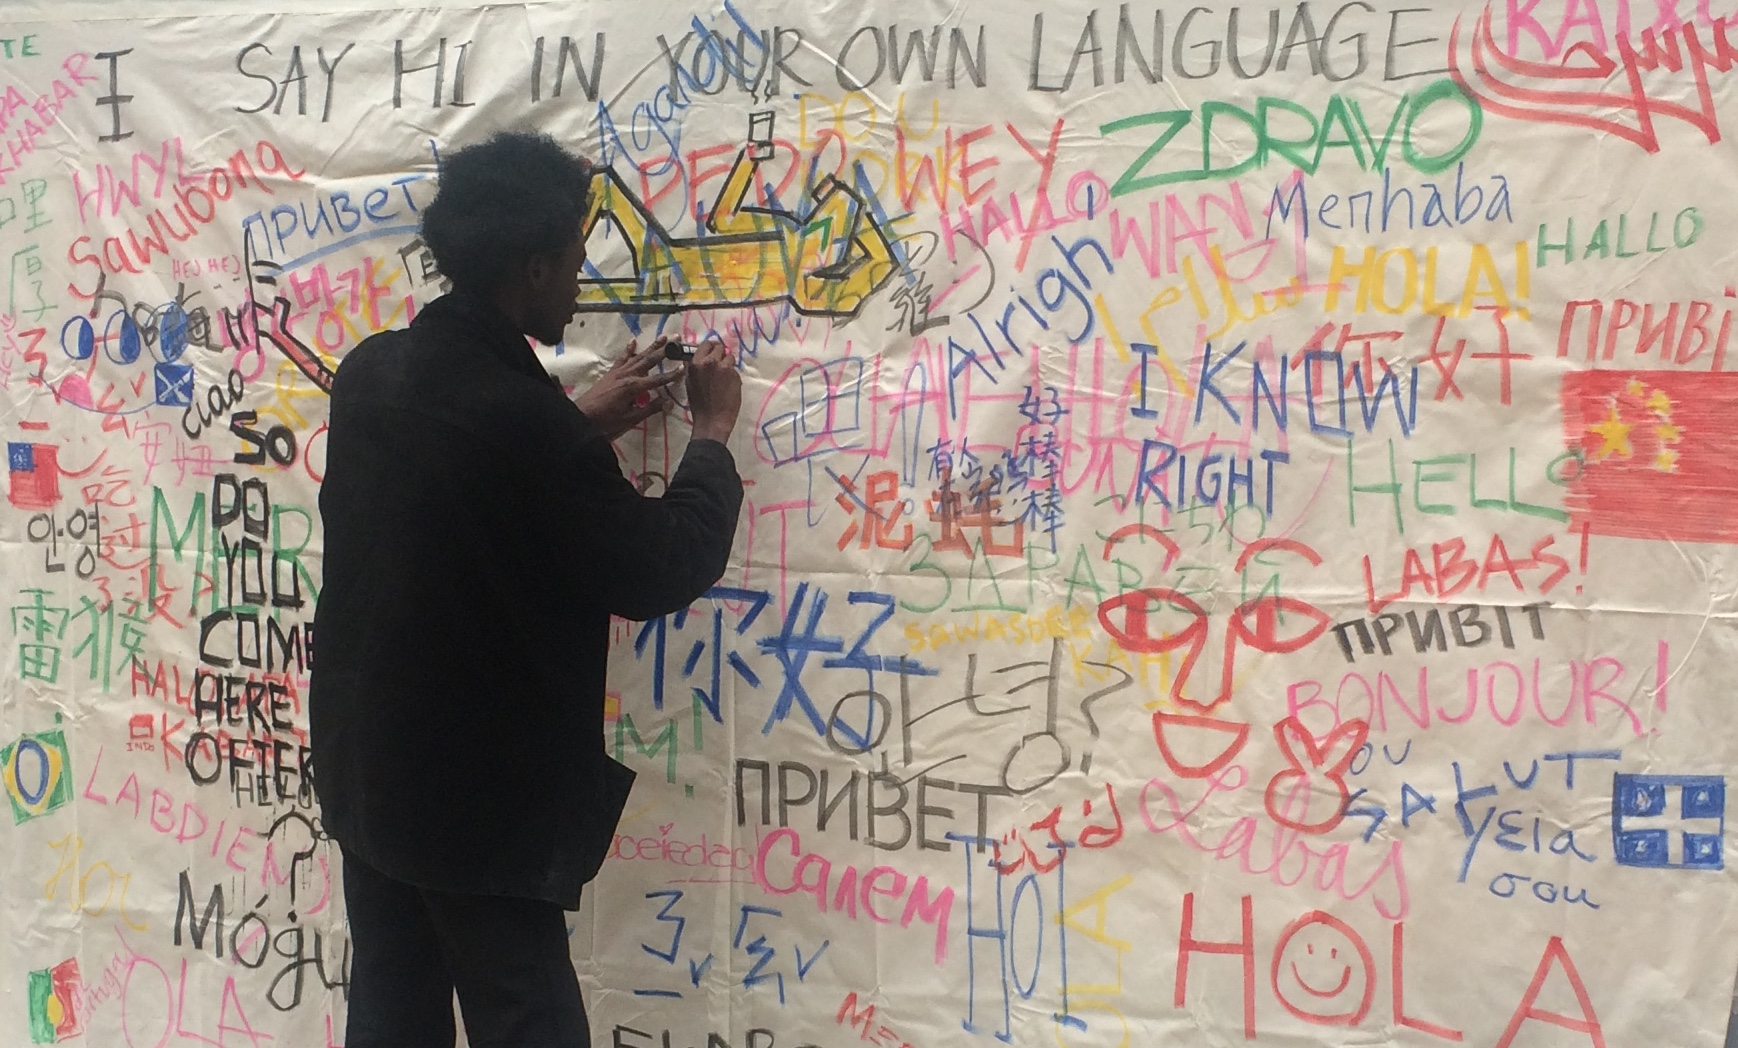 'Say hi in your own language', the Street, 26 October 2016